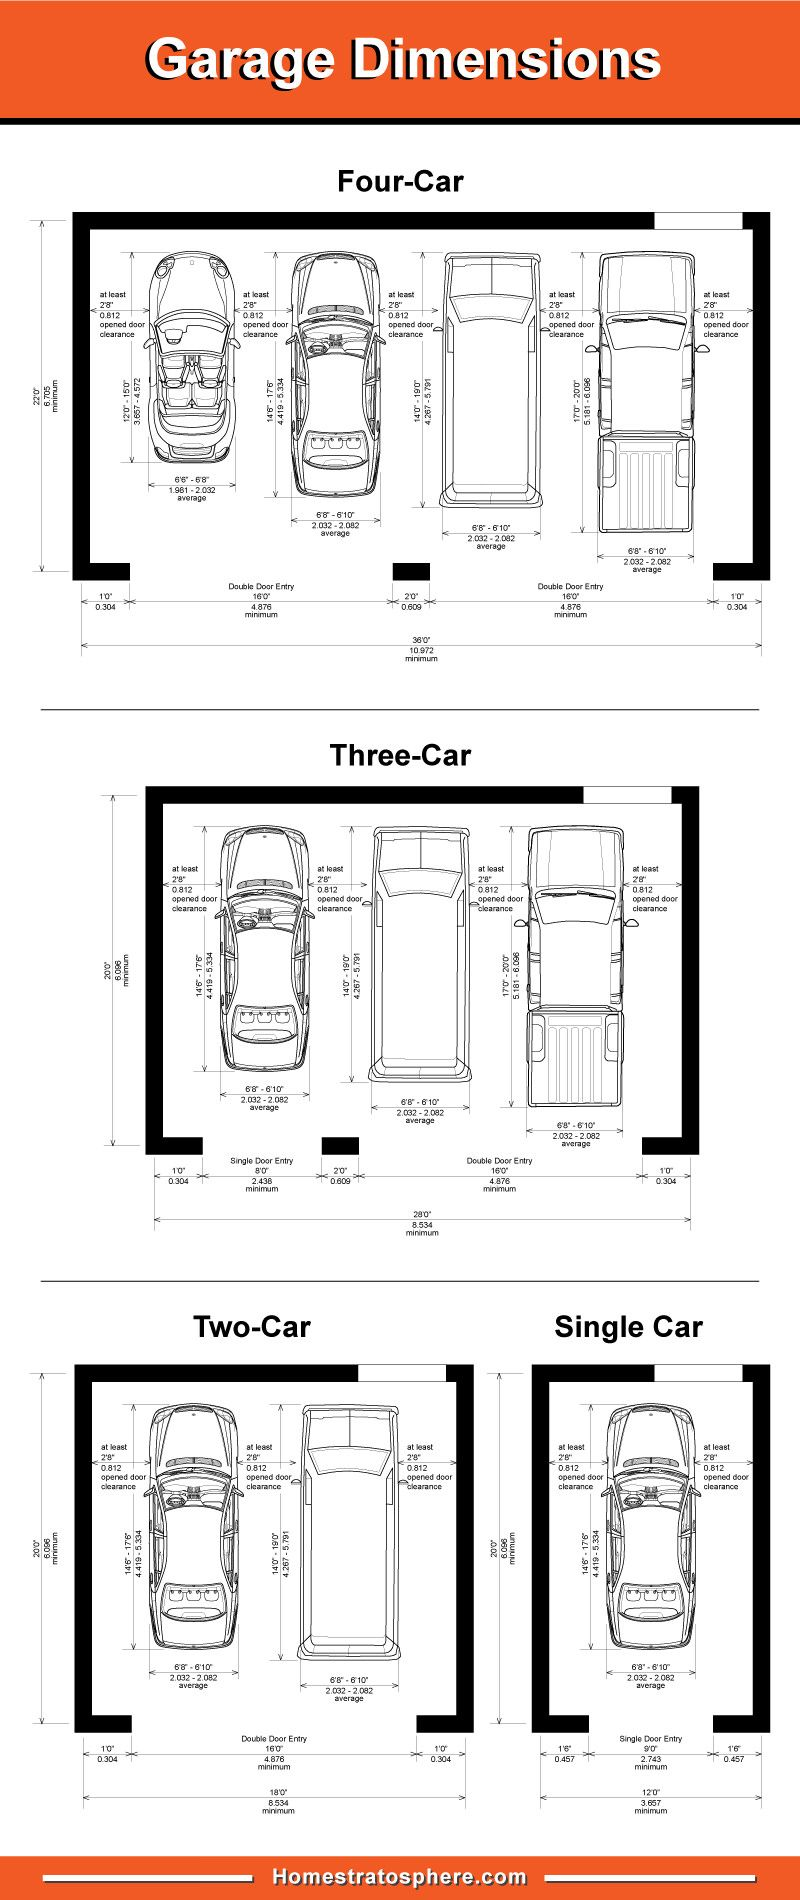 Standard Garage Dimensions For 1 2 3 And 4 Car Garages Diagrams Garage Dimensions Garage Floor Plans Garage House Plans